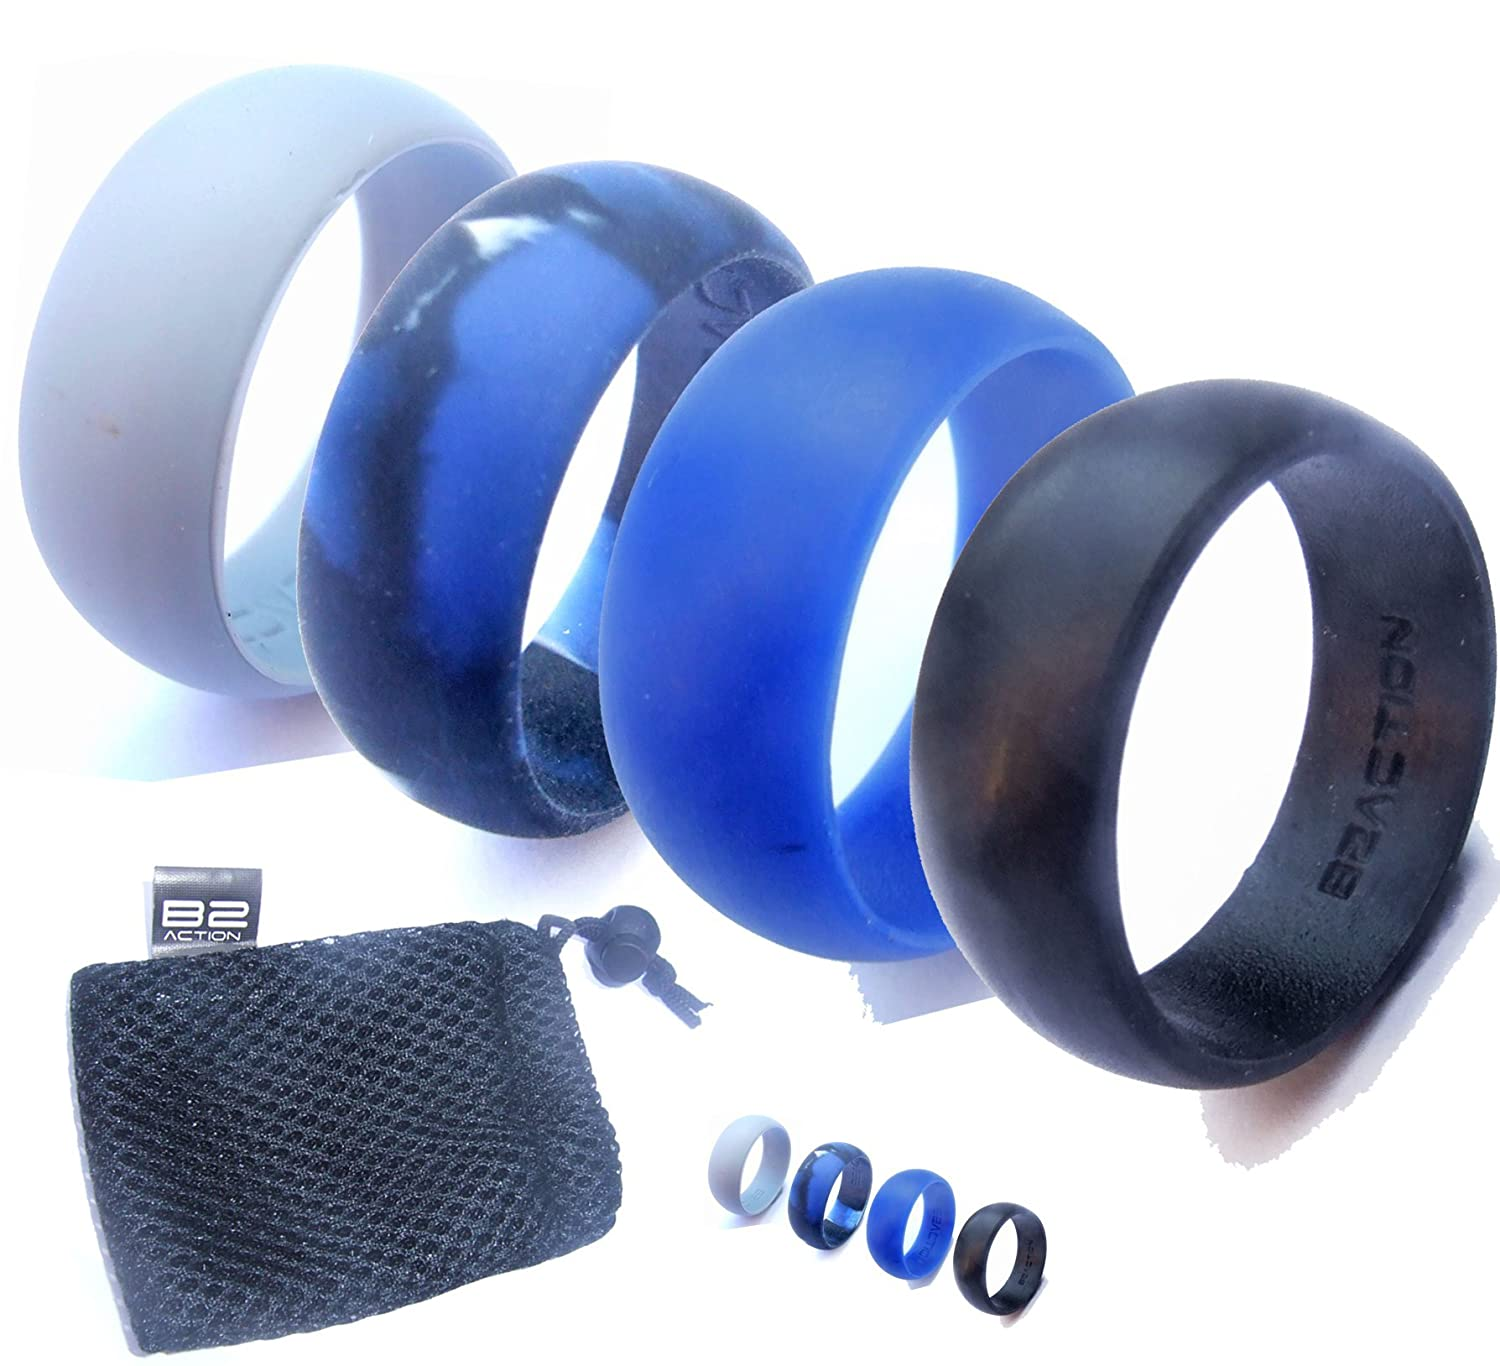 Amazon : Men's Silicone Wedding Ring Band By B2action 4 Rings Pack  (black, Gray, Blue, Camo) With Gift Box : Sports & Outdoors